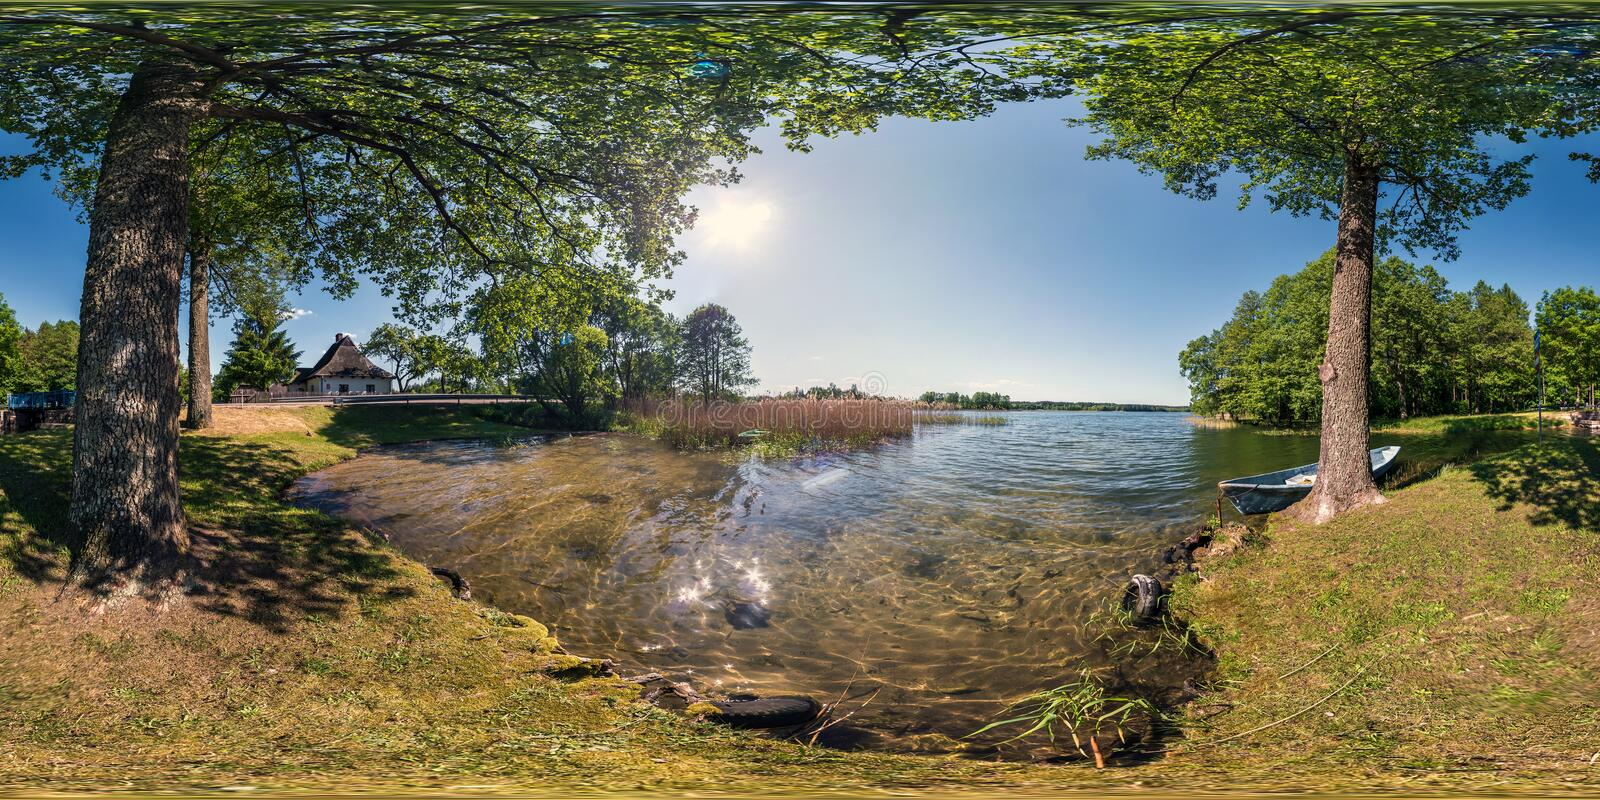 Full seamless panorama 360 by 180 angle view on the shore of huge forest lake with a boat in sunny summer day in equirectangular royalty free stock image